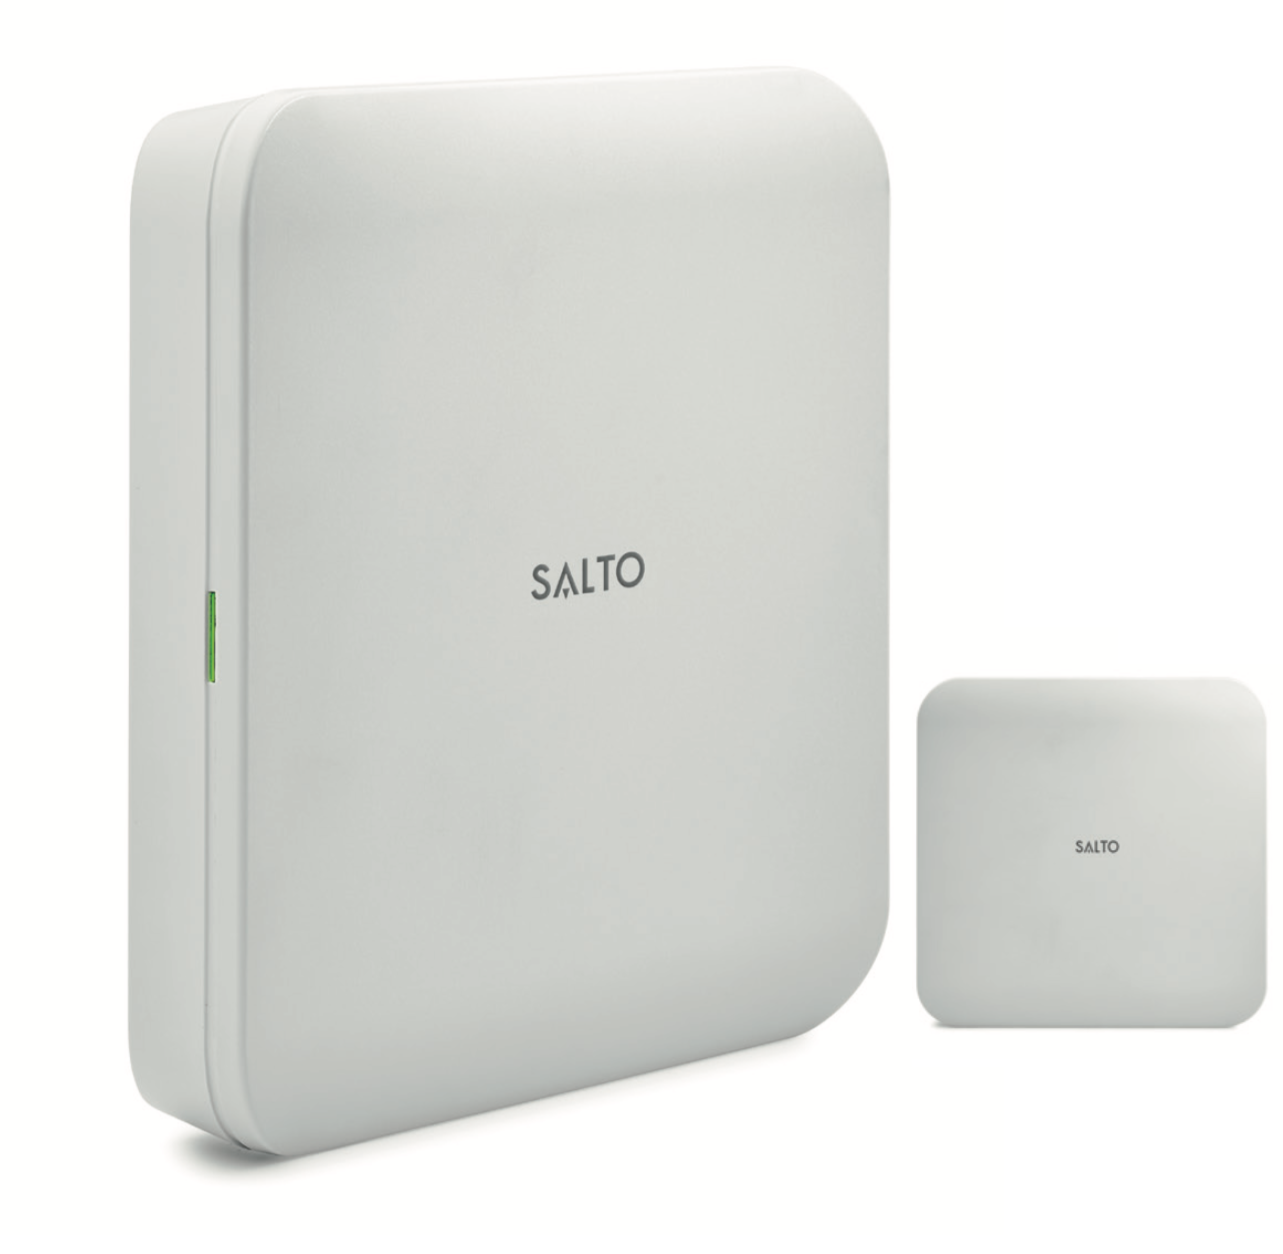 Salto Access Control from PASS Security - PASS Security